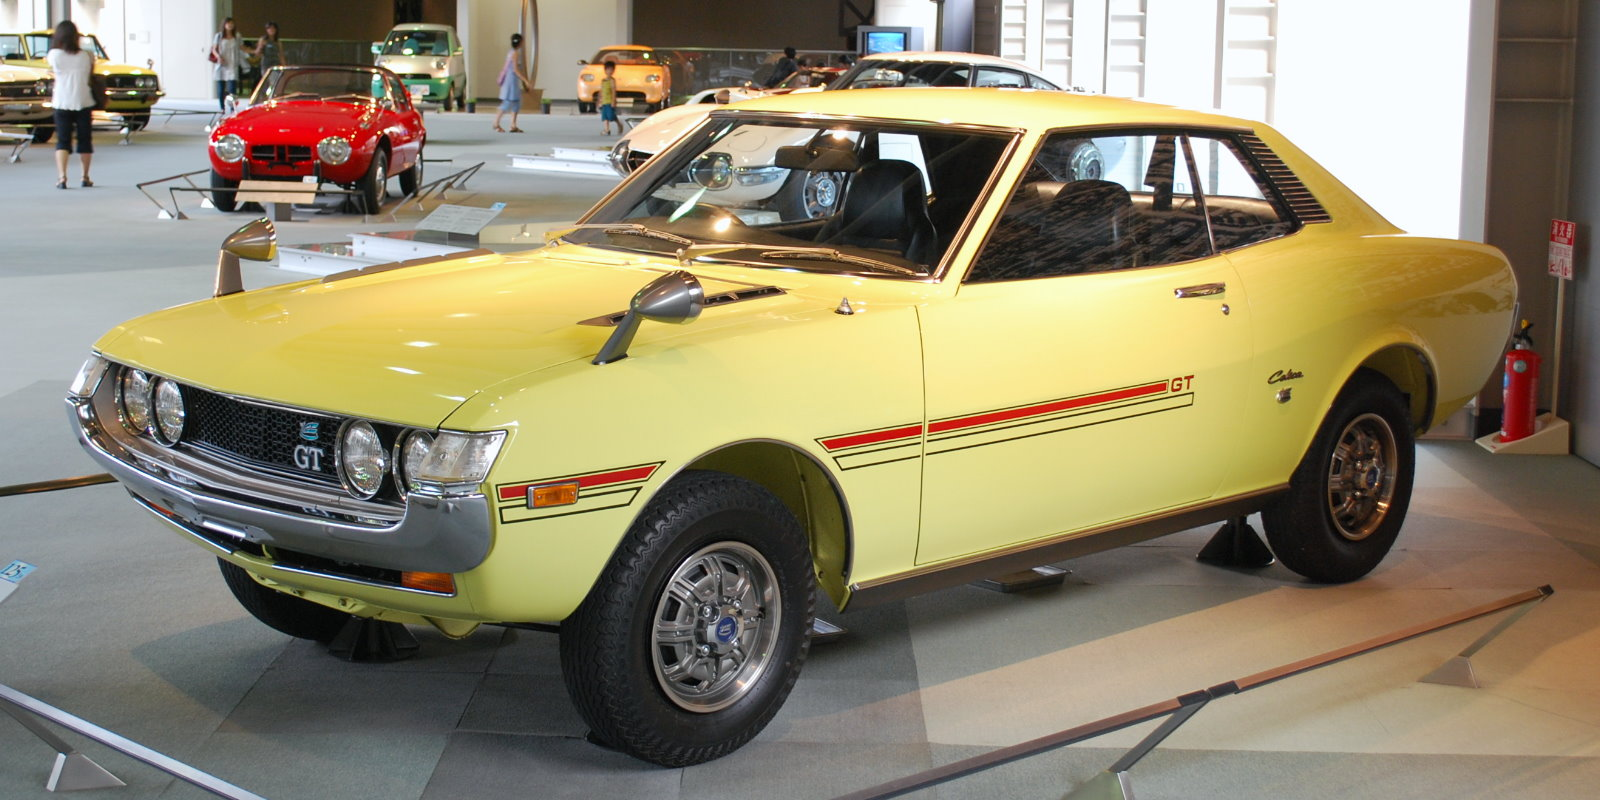 https://upload.wikimedia.org/wikipedia/commons/2/20/1970_Toyota_Celica_01.jpg